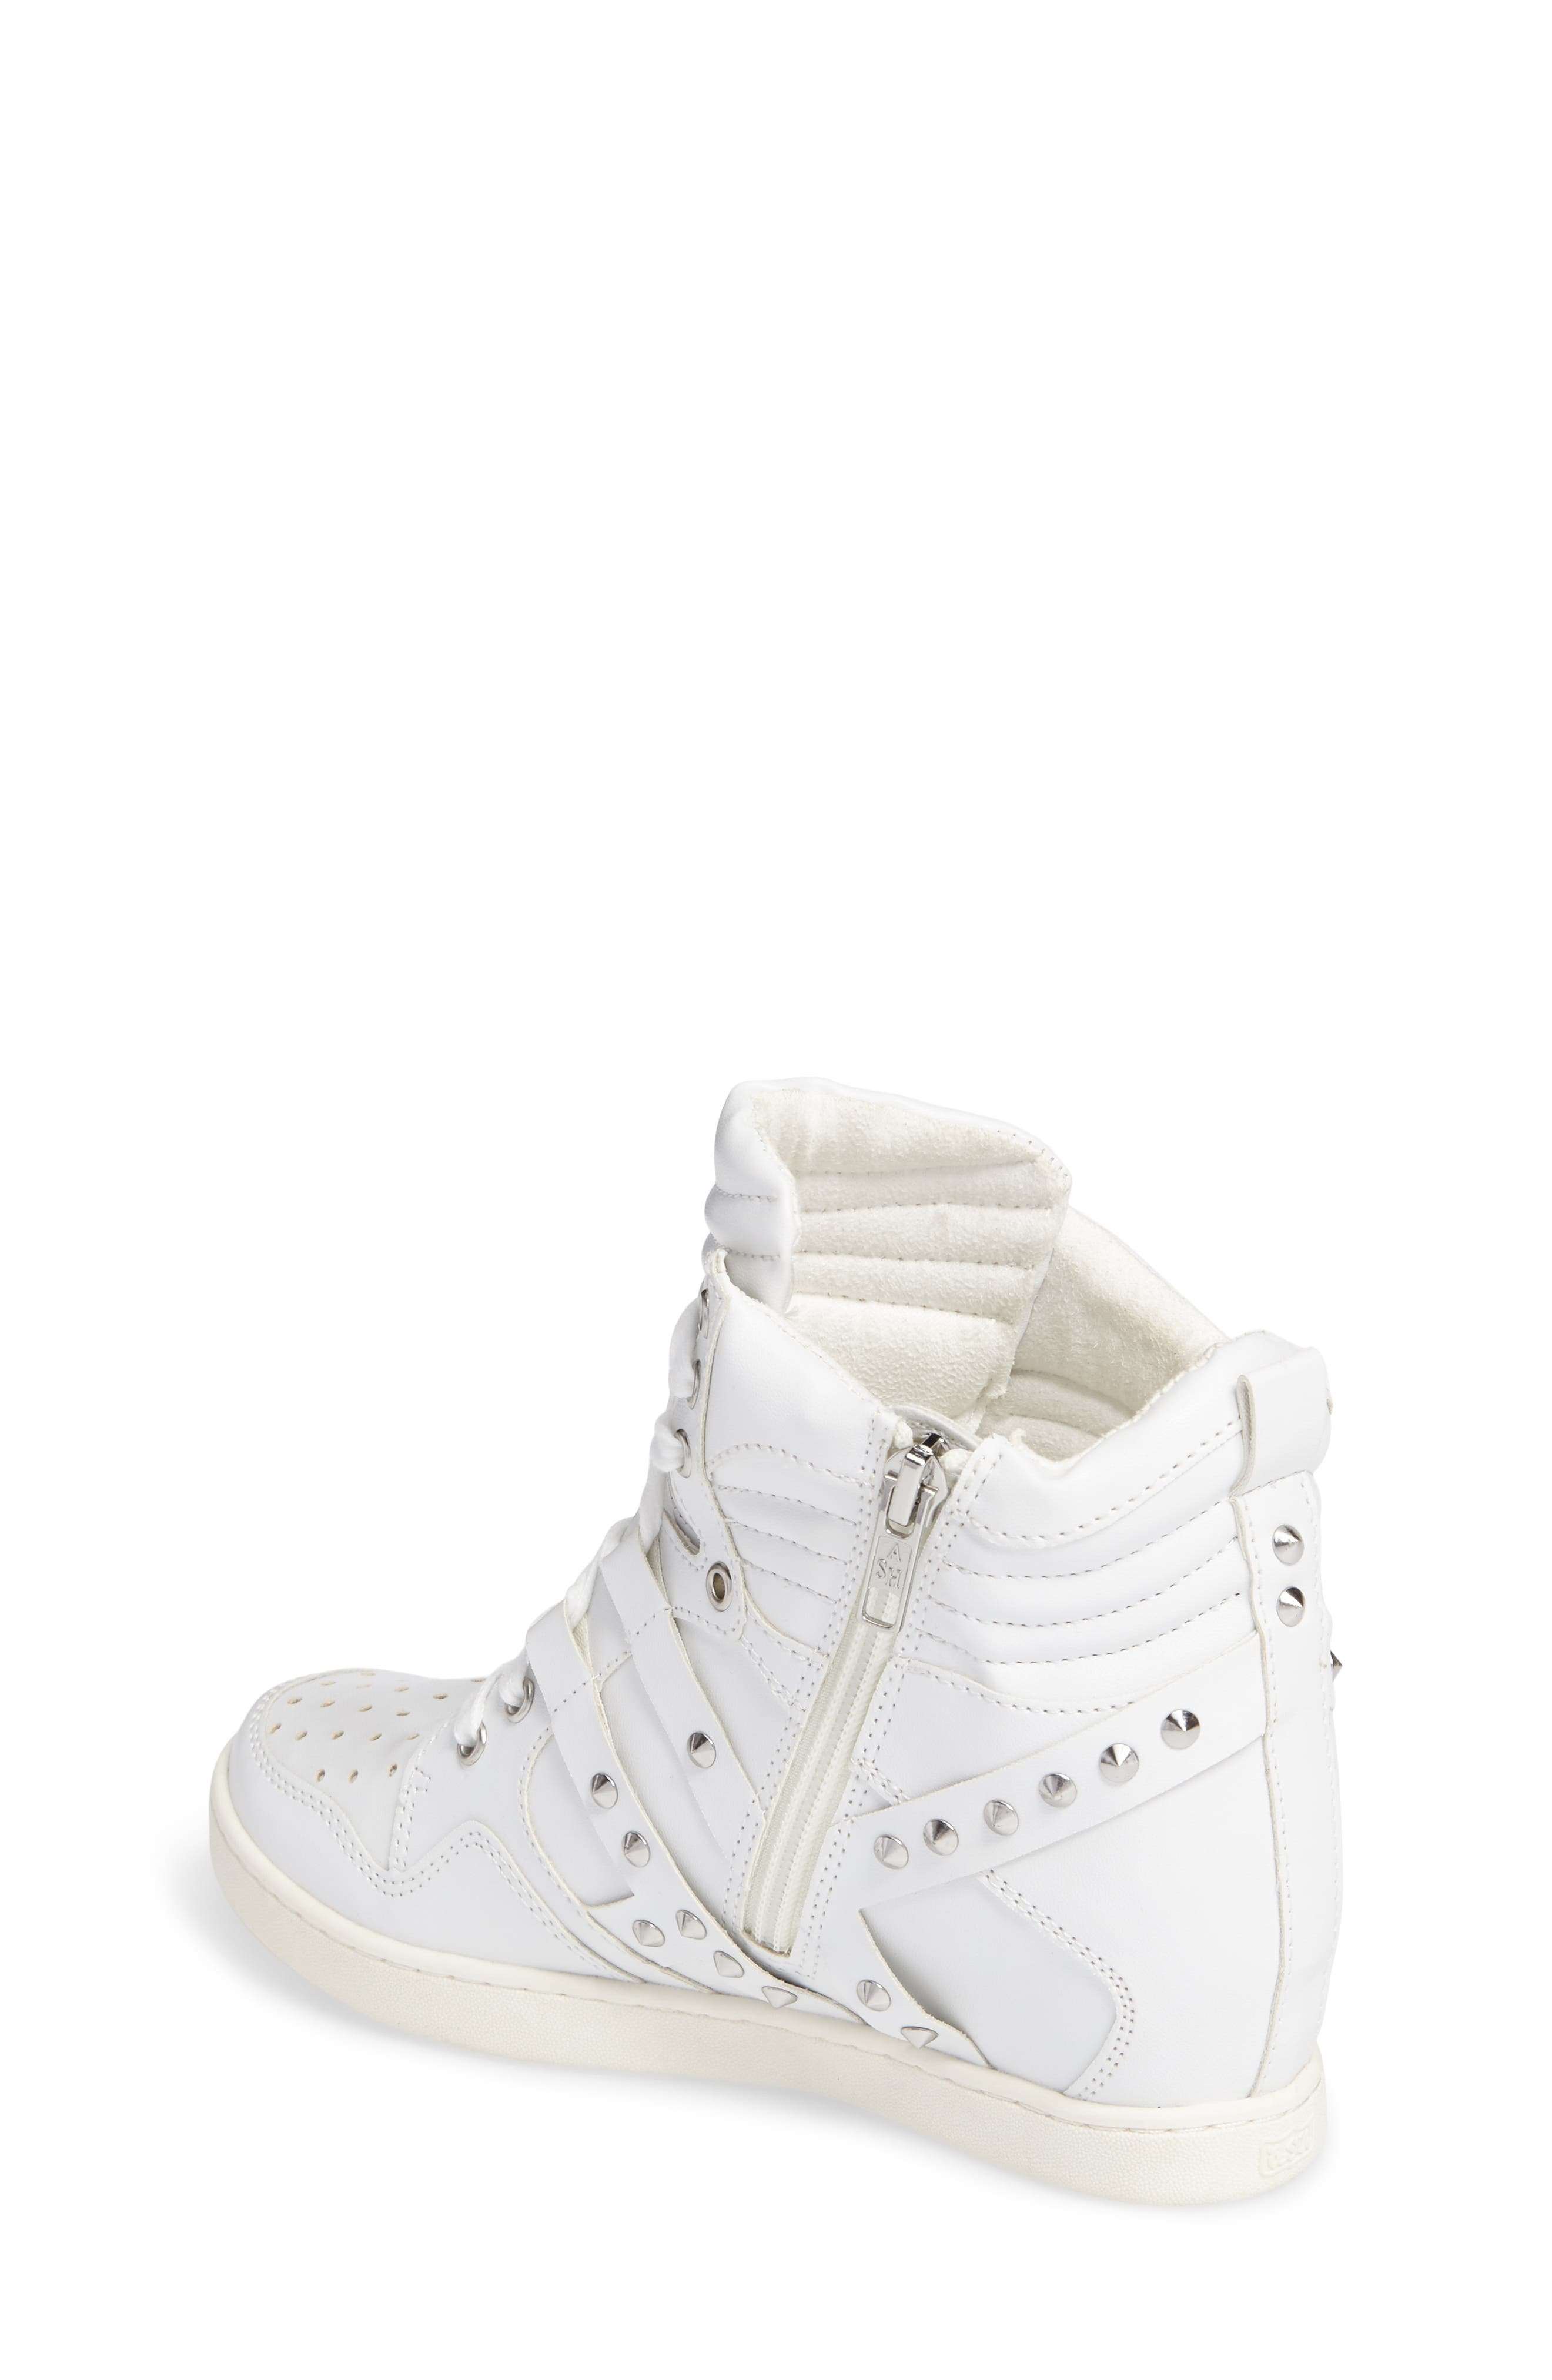 Boogie Chic Studded High Top Sneaker,                             Alternate thumbnail 4, color,